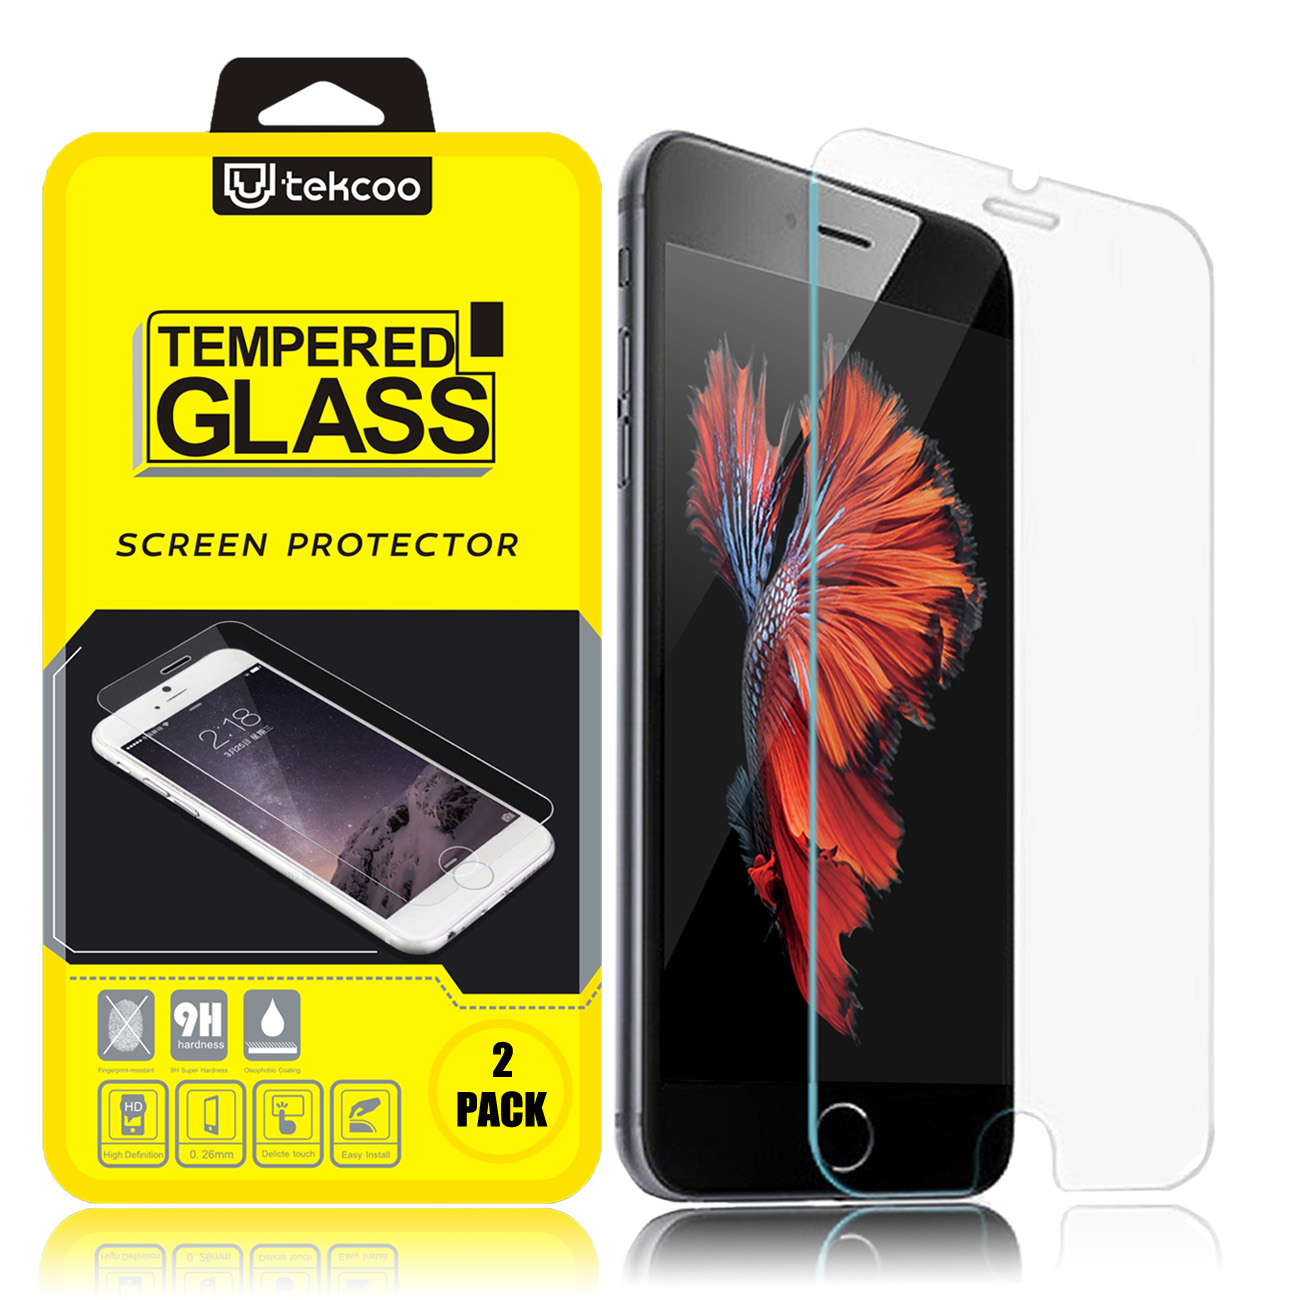 iPhone 6S Screen Protector, 2-Pack Tekcoo iPhone 6 / iPhone 6S (4.7 inch) Premium 9H Hardness Anti-Scratch HD  Tempered Glass Screen Protector Skin [3D Touch Compatible] [Rounded Edge Design]